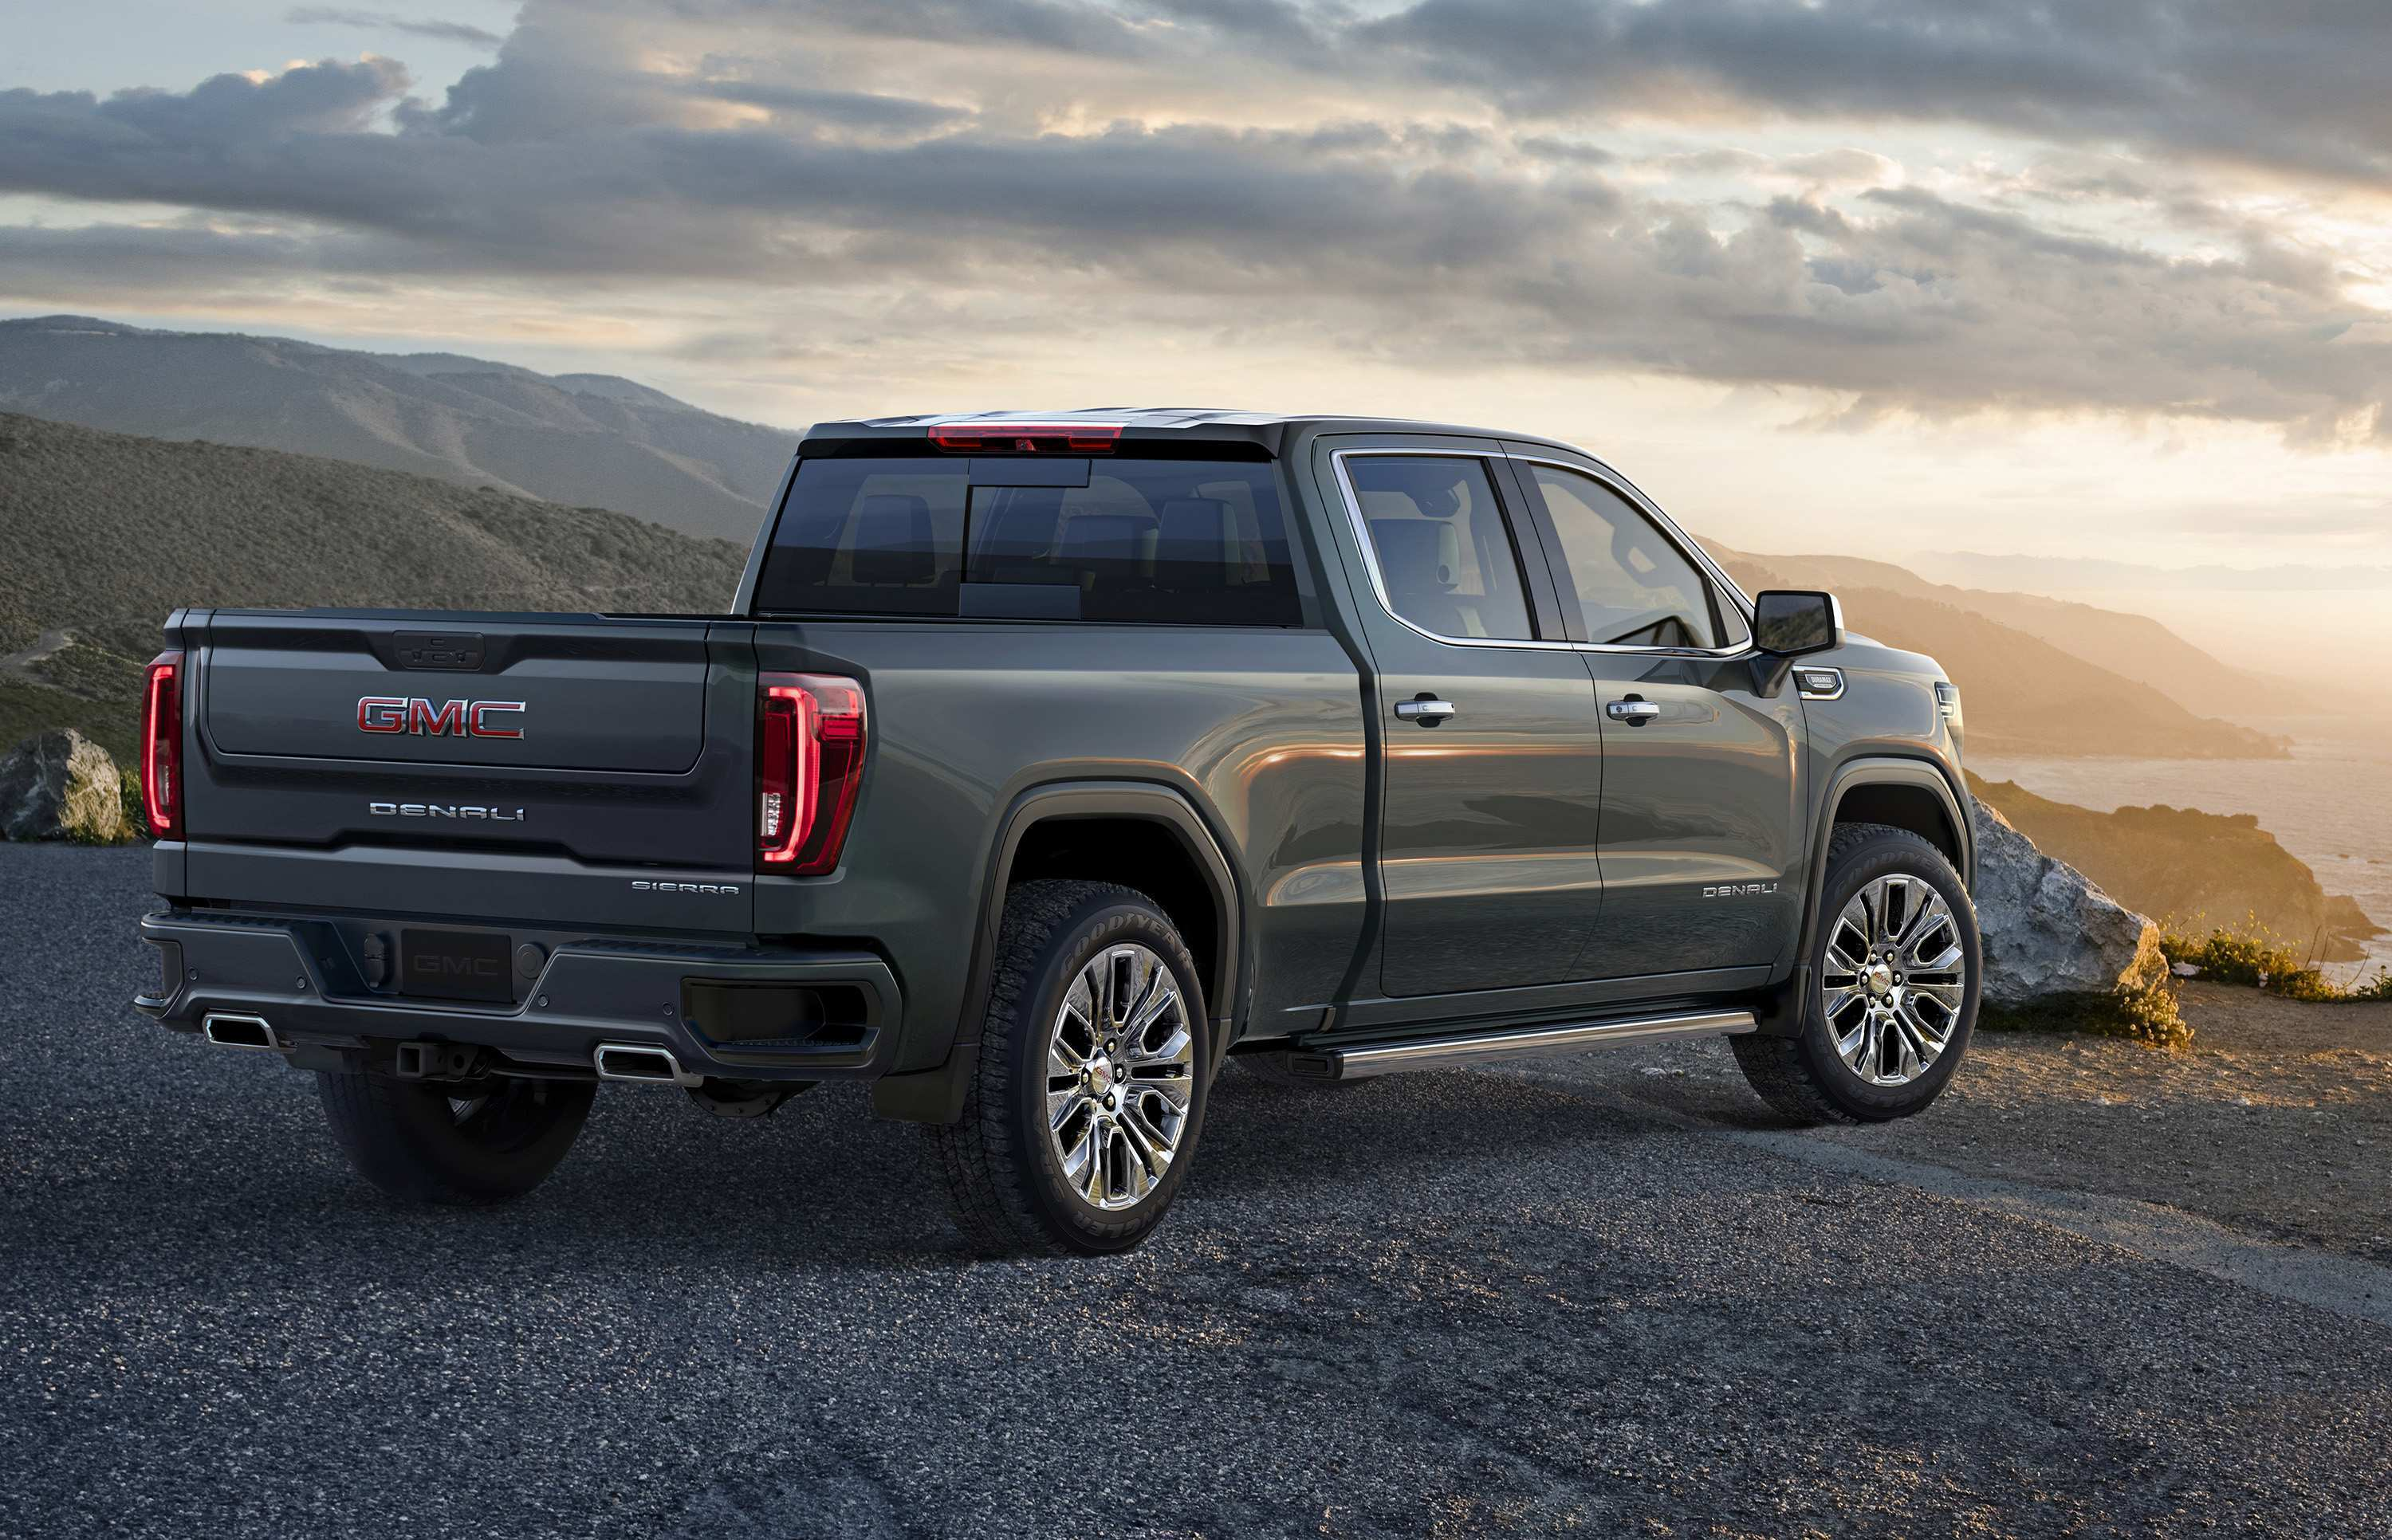 26 Great 2019 Gmc Images Pricing for 2019 Gmc Images